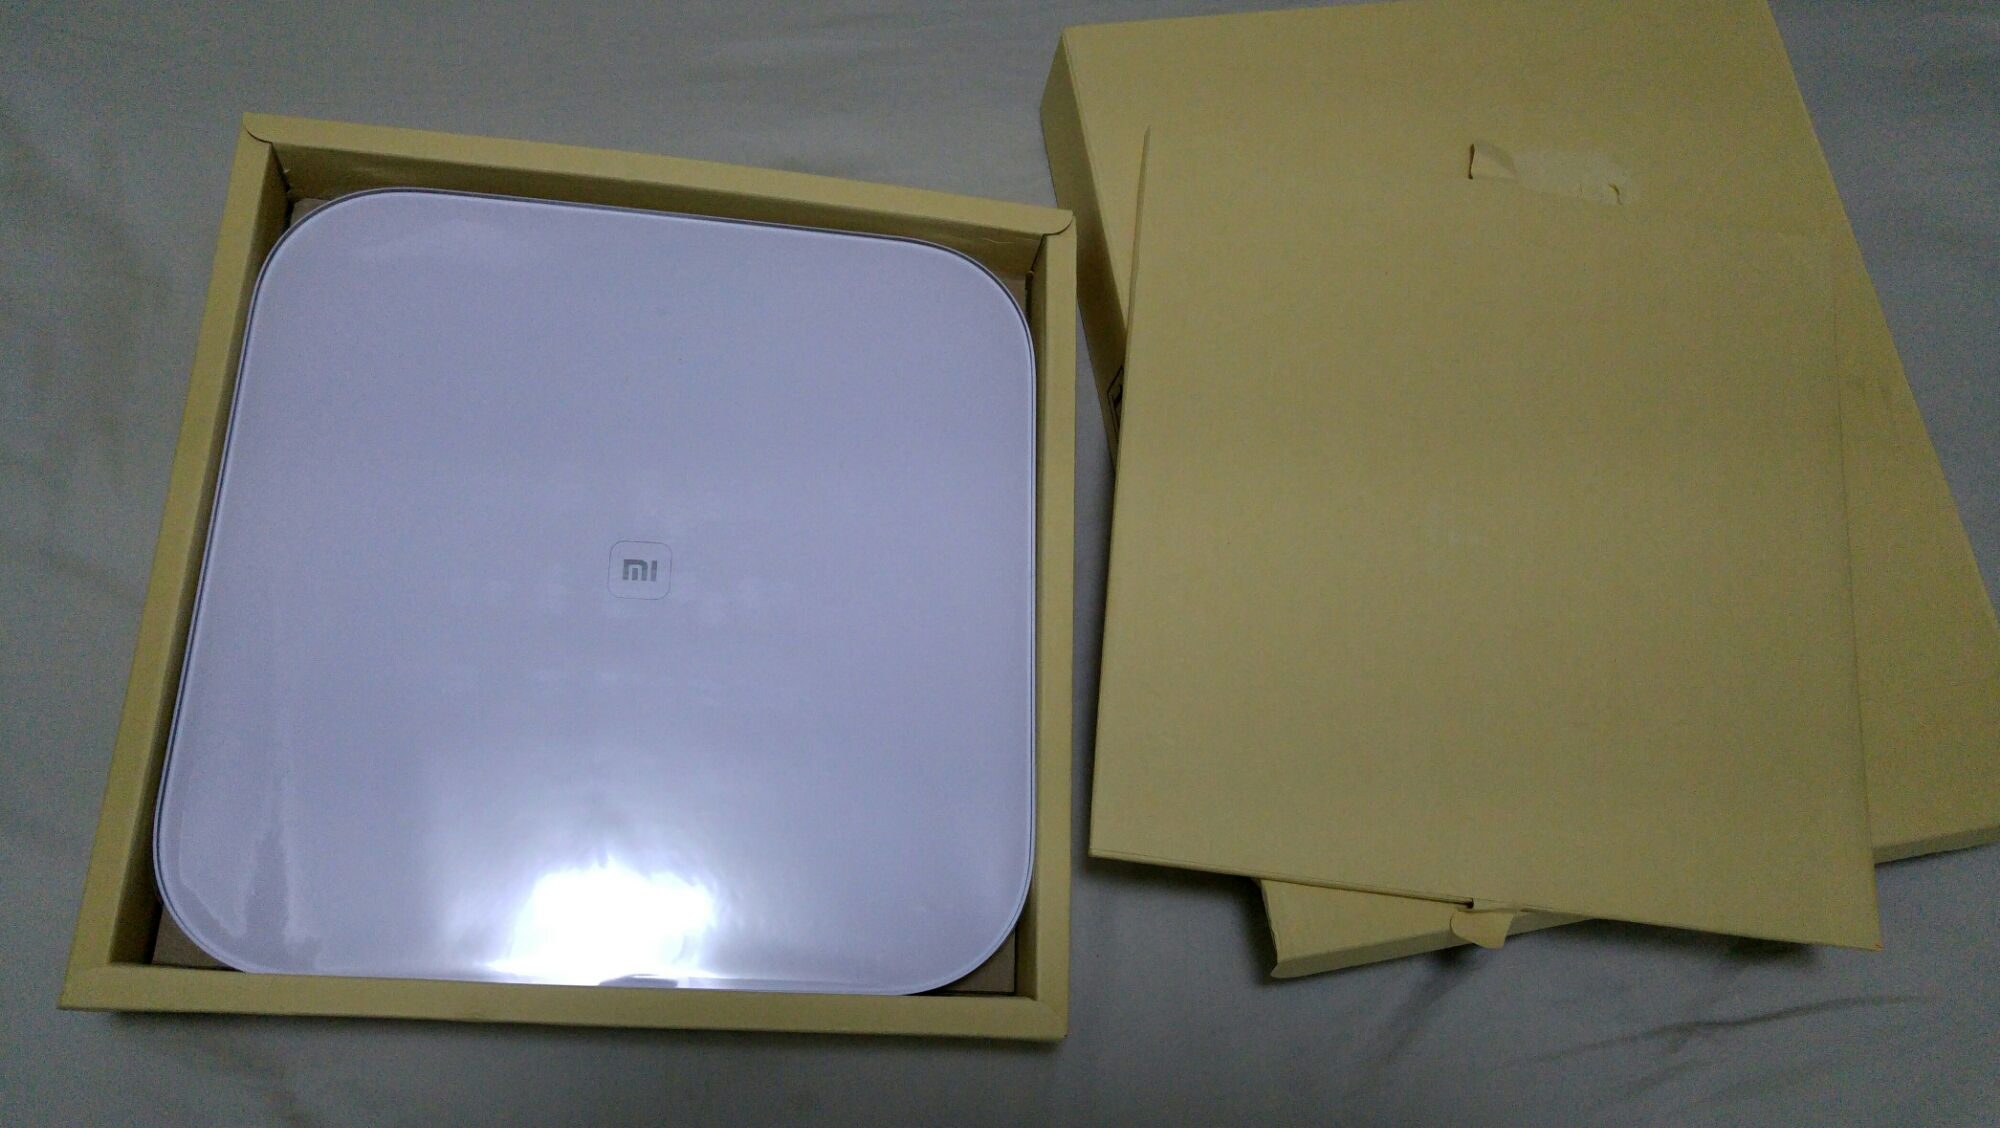 review: xiaomi mi scale smart weighing bathroom scale (with